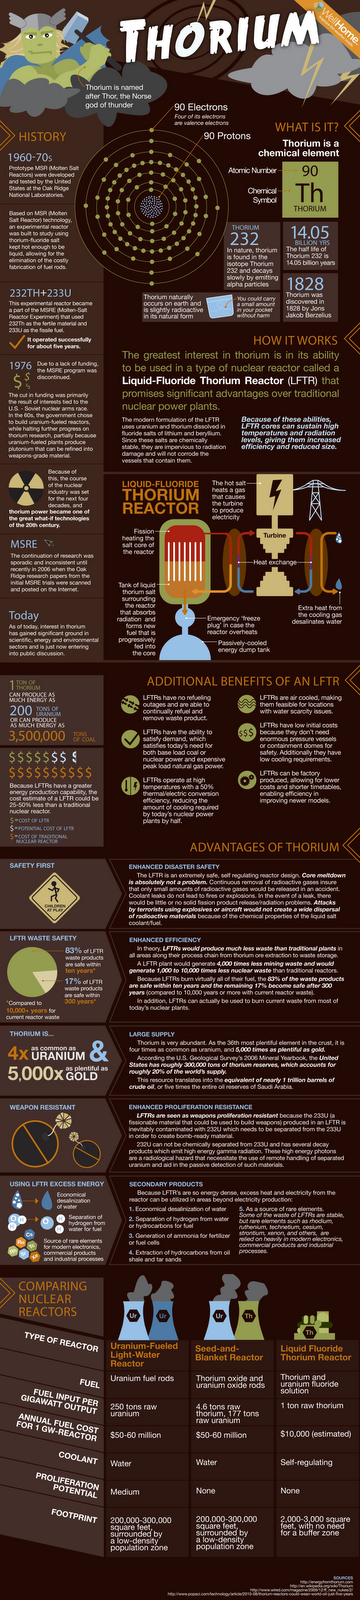 thorium the next generation of nuclear power